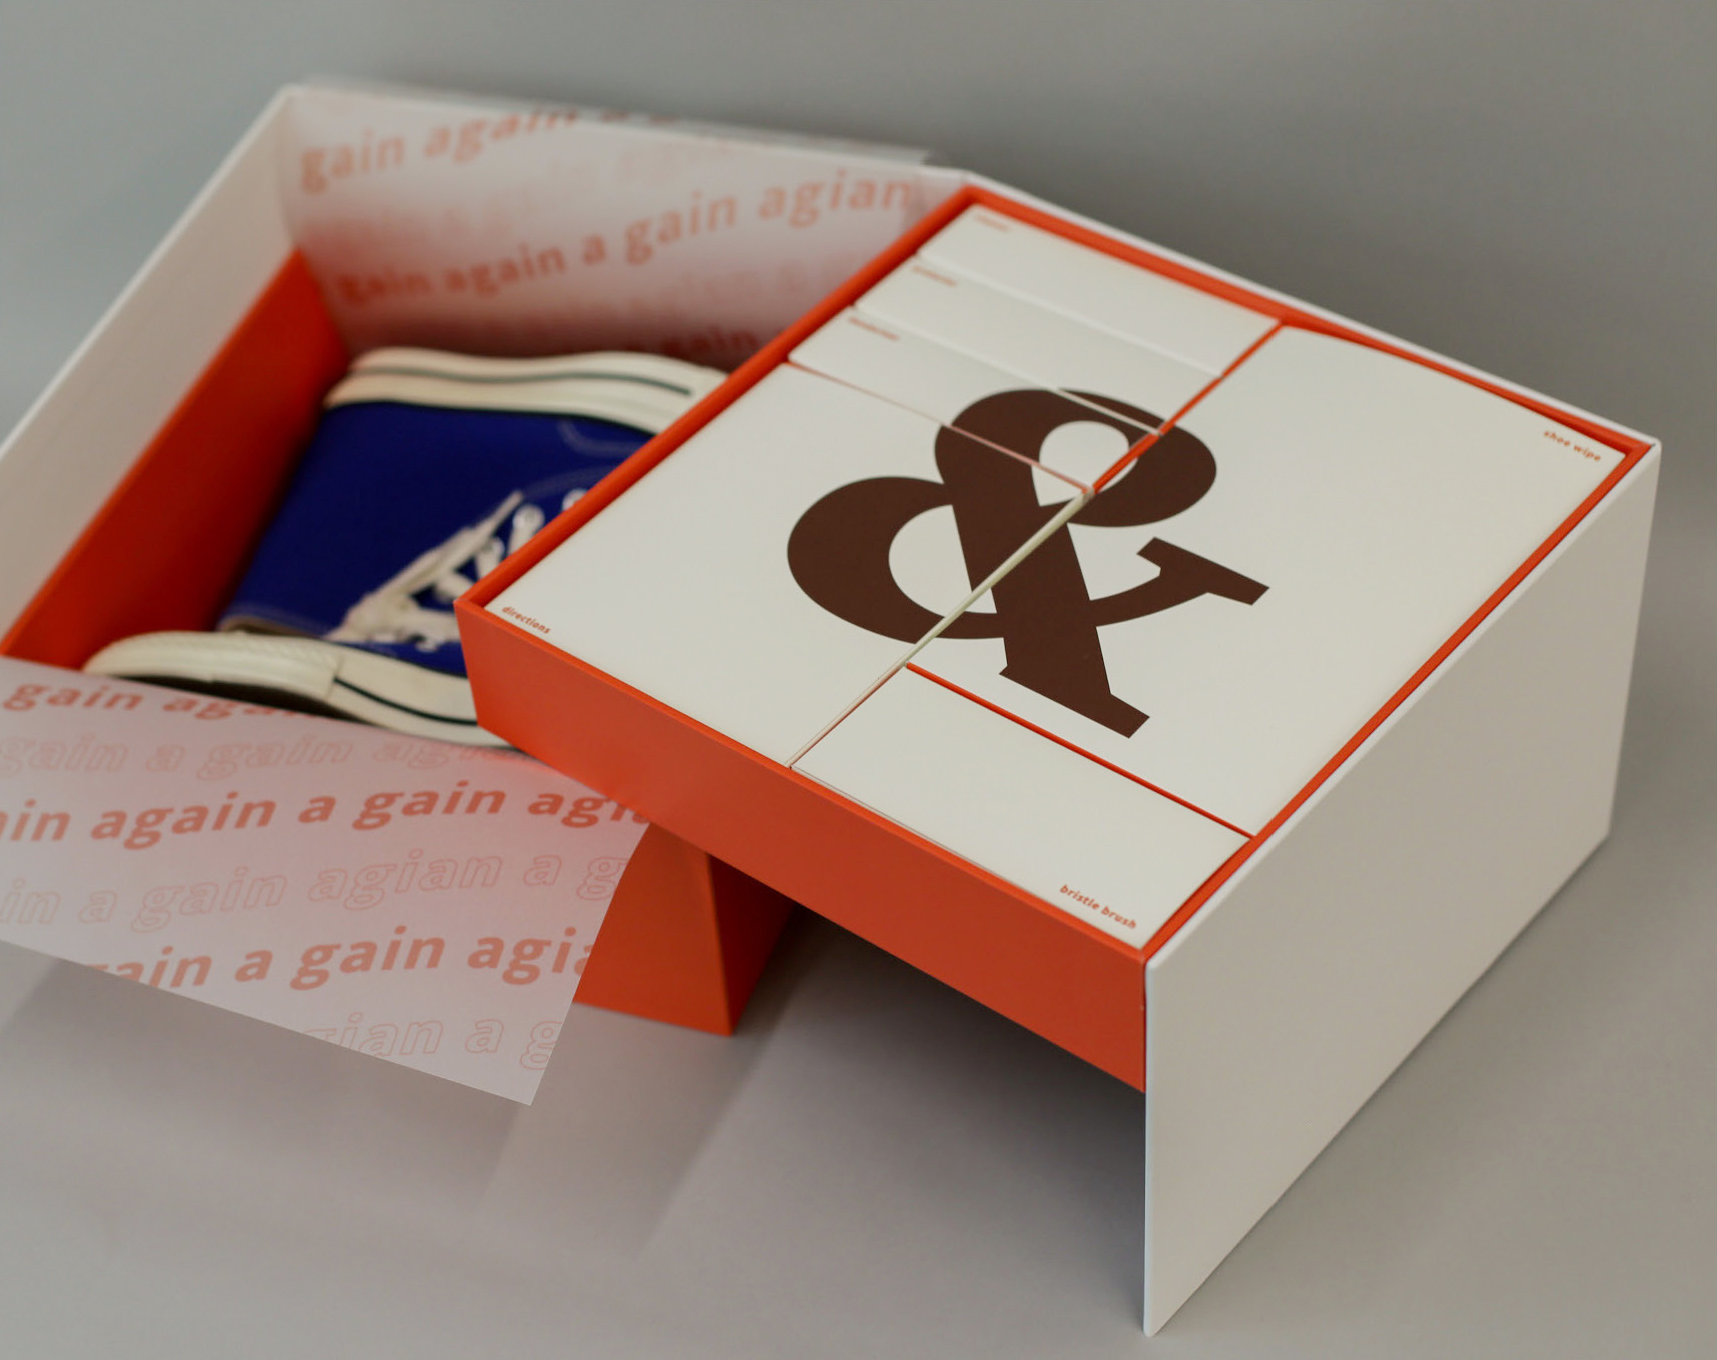 Again Sneaker Care Limited Edition Packaging Design